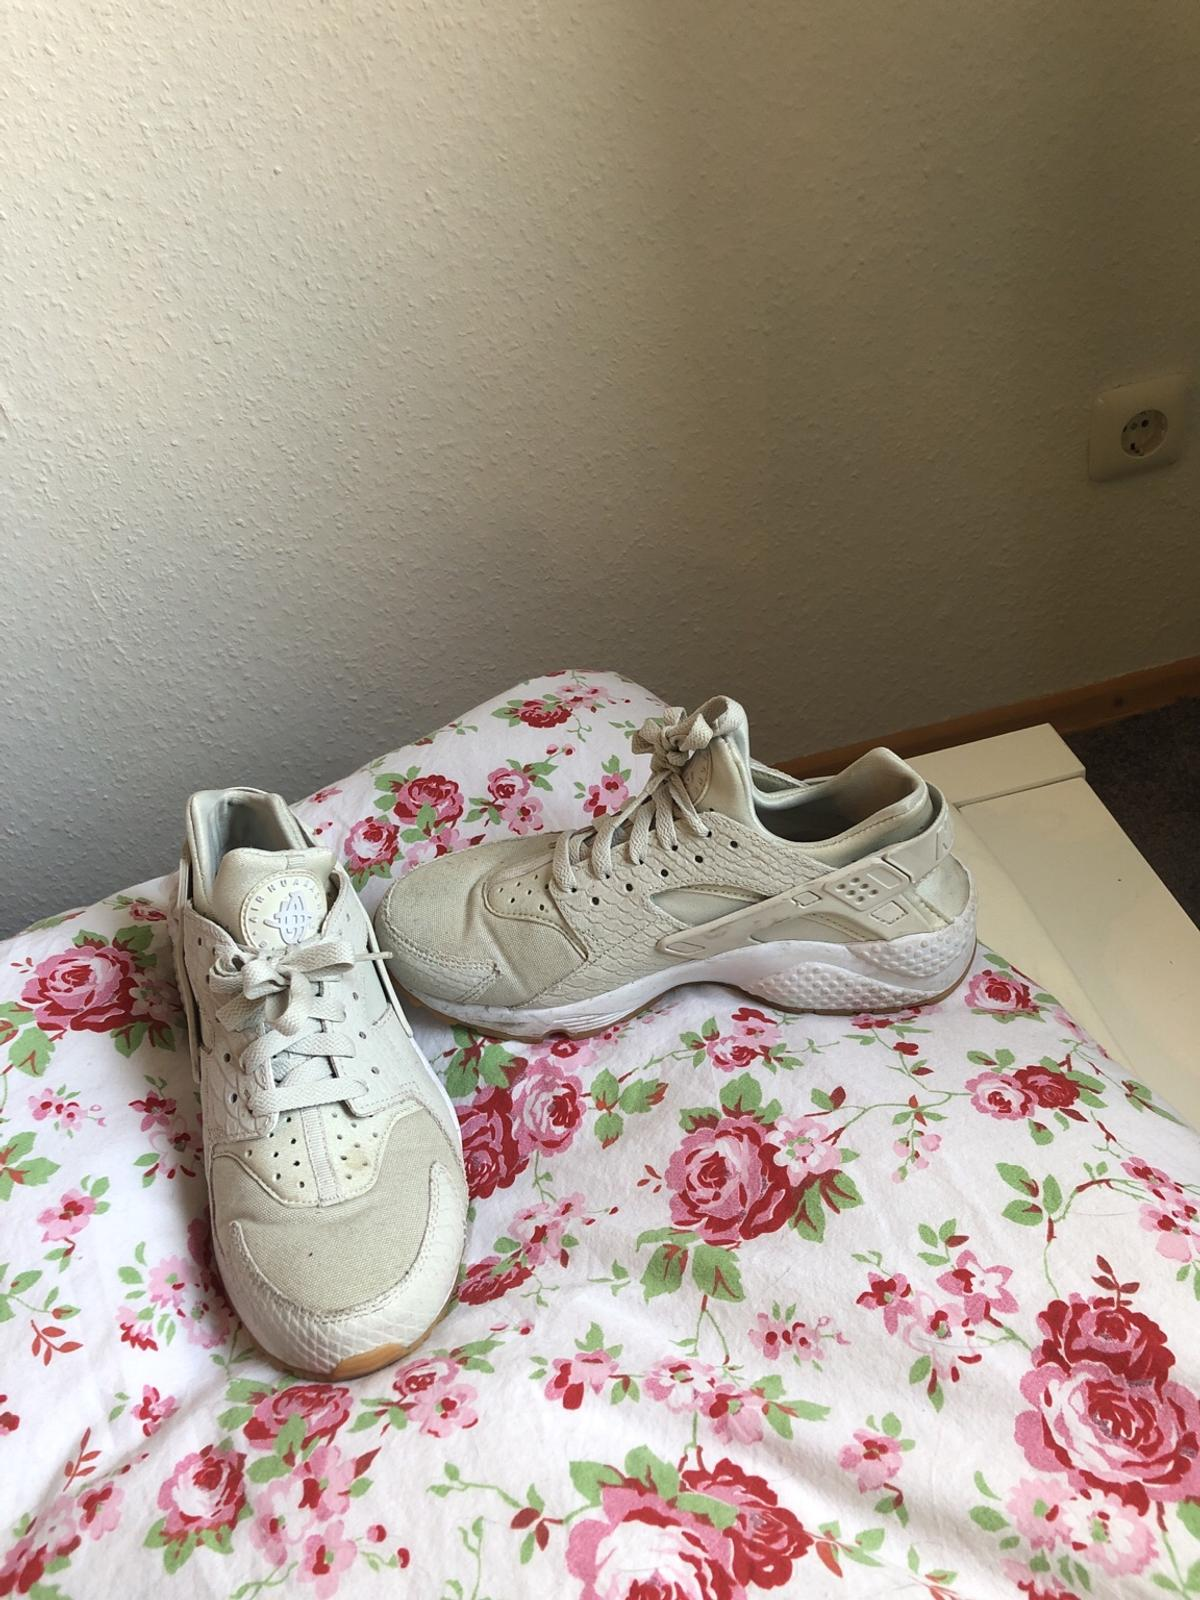 33b7300ce3774 Nike Air Huarache 40 in 22880 Wedel for €100.00 for sale - Shpock